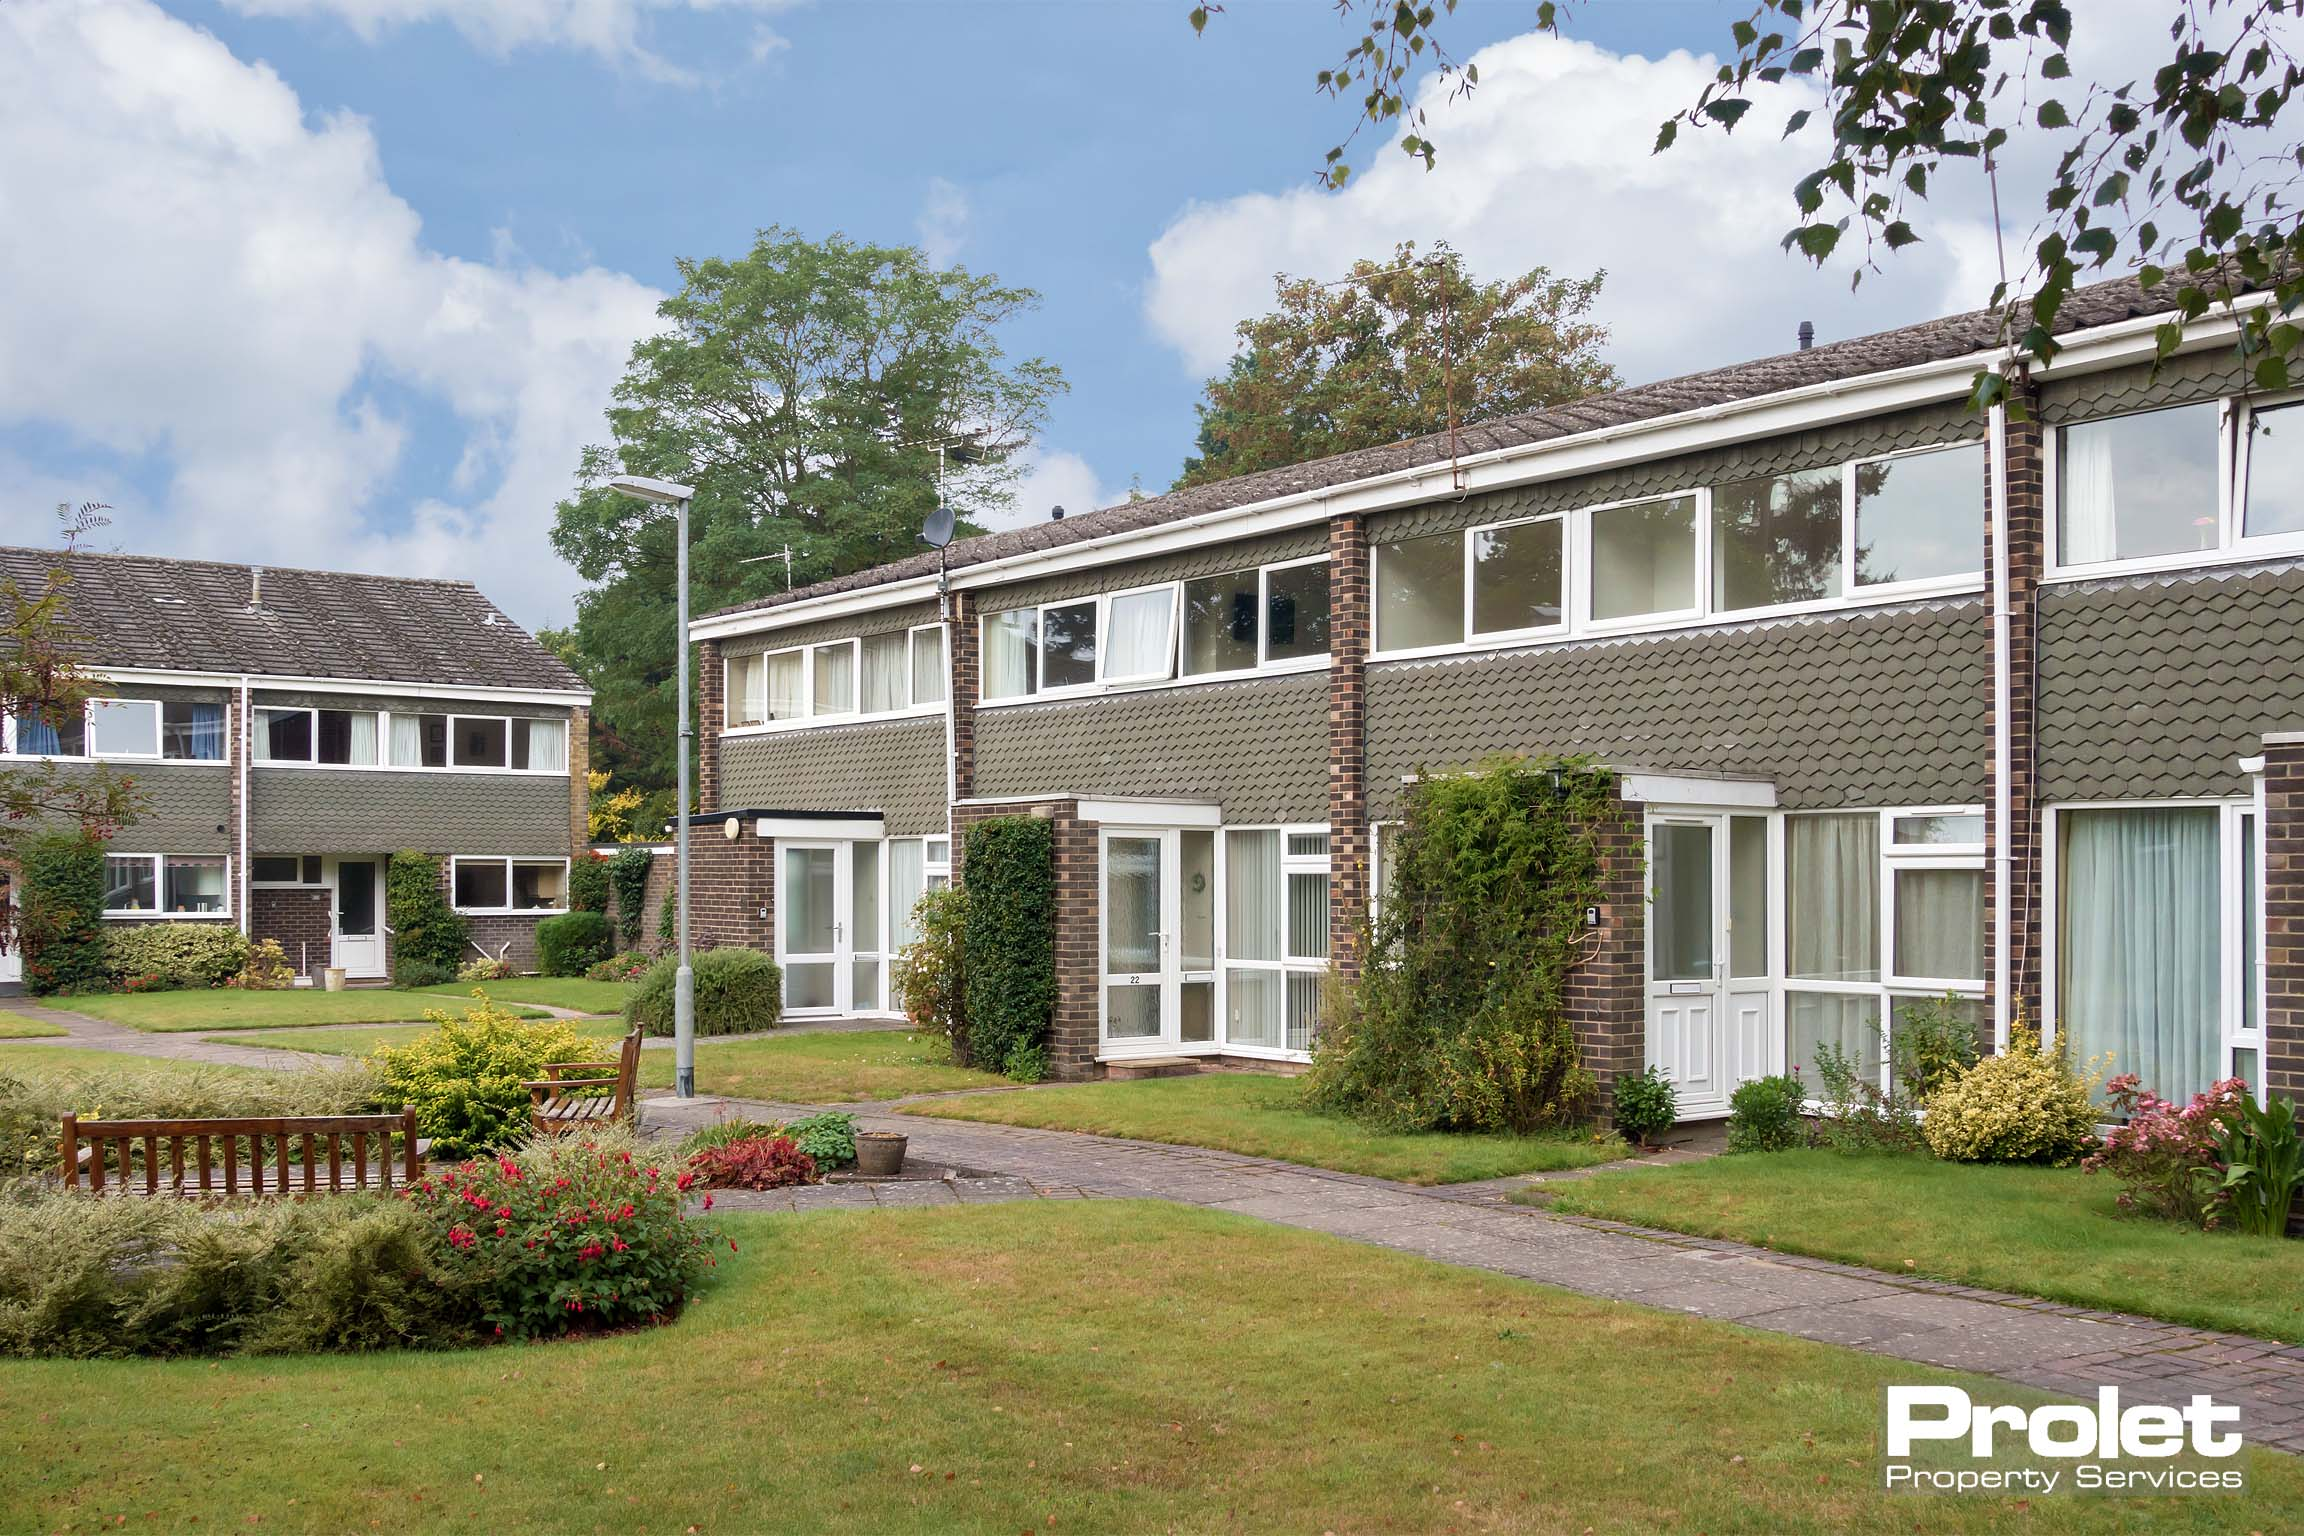 Booking a viewing for The Walnuts, Branksome Road, Norwich, NR4 6SR